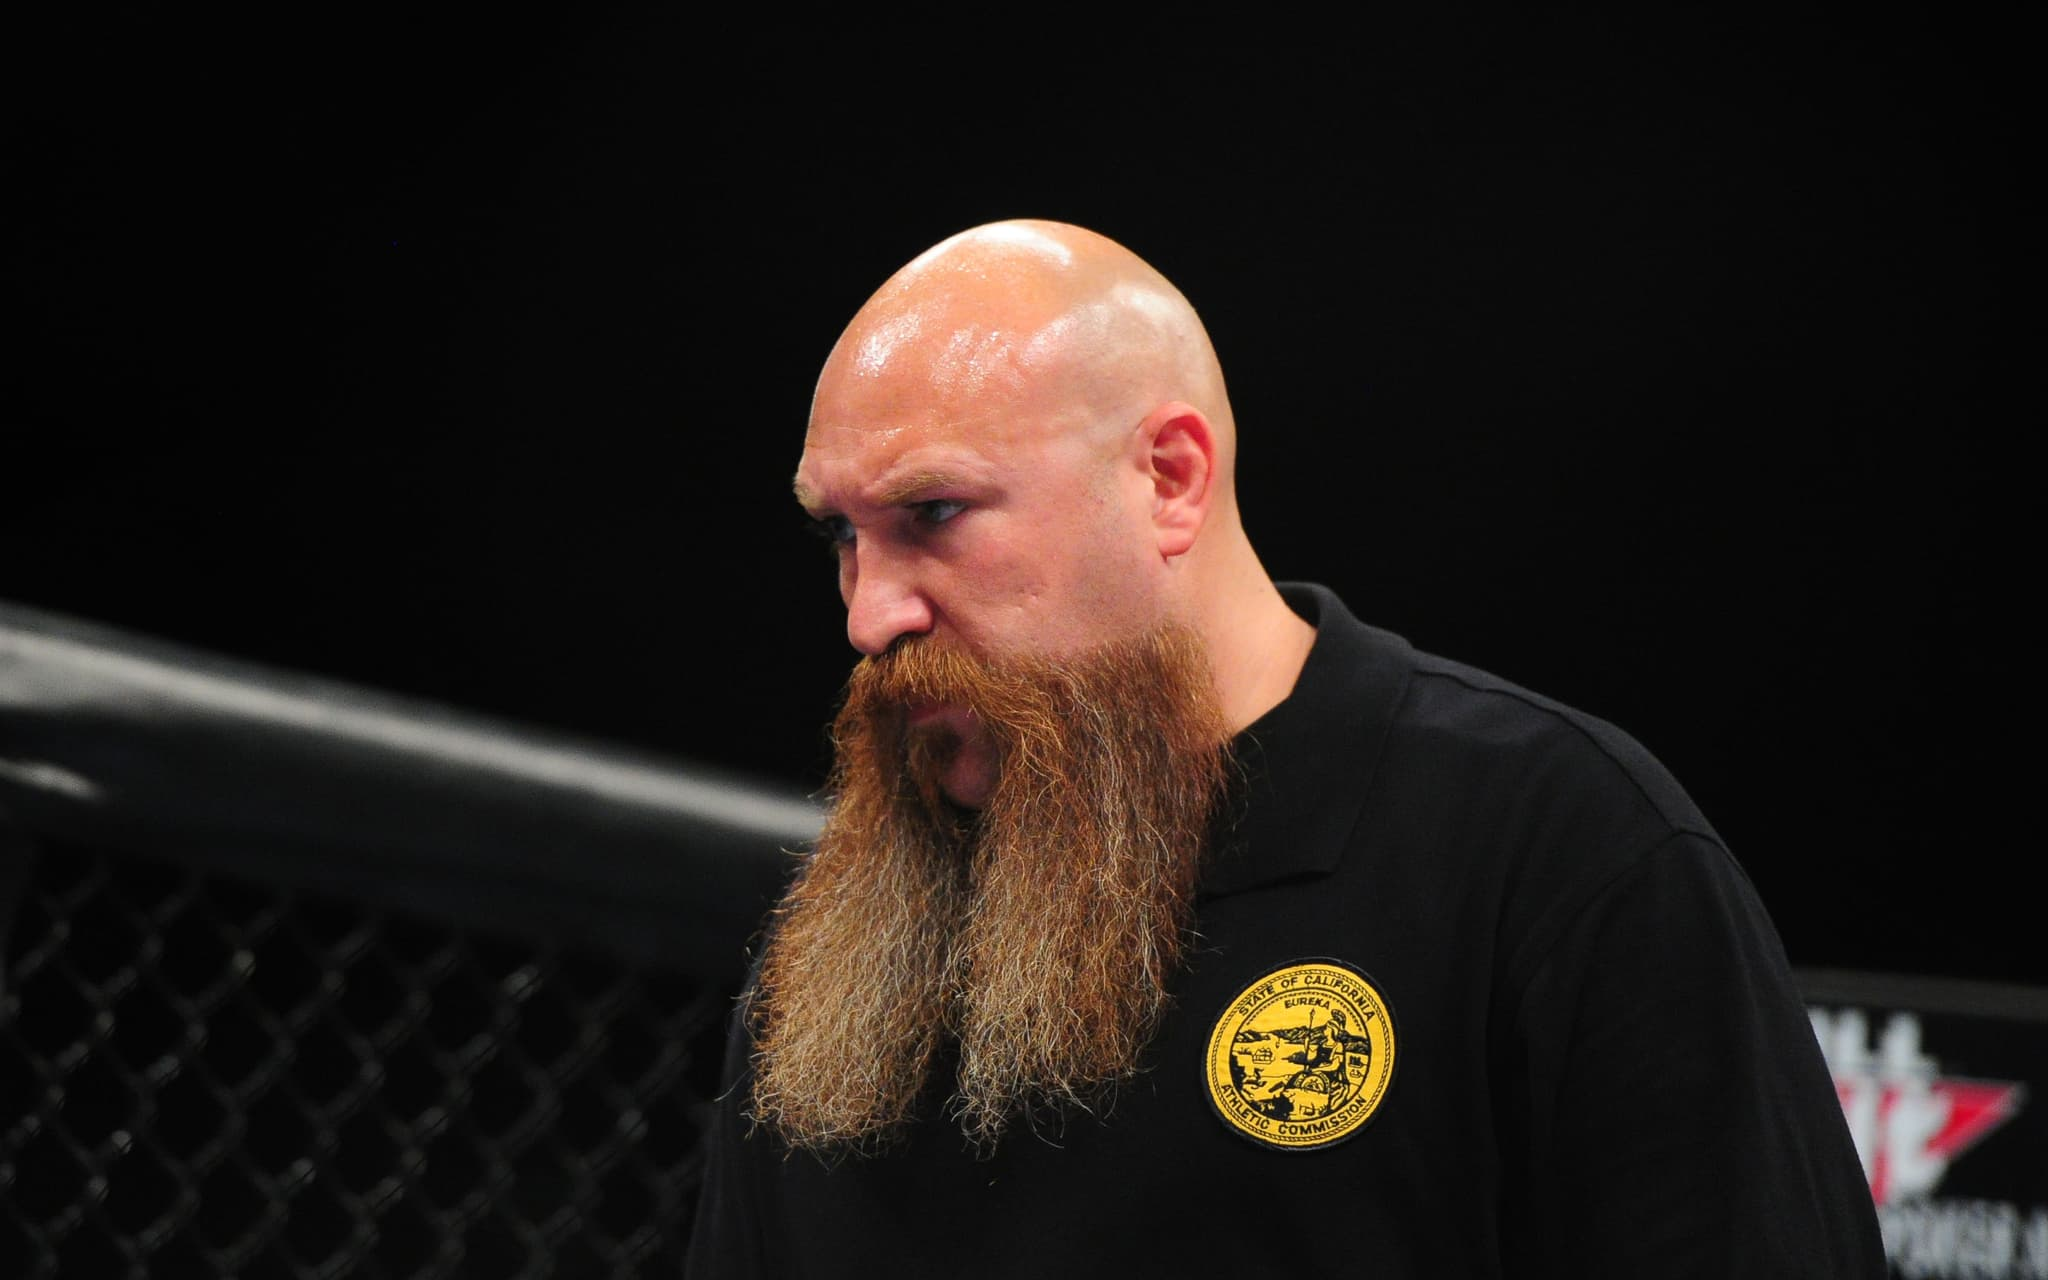 mike beltran beard photo - 1